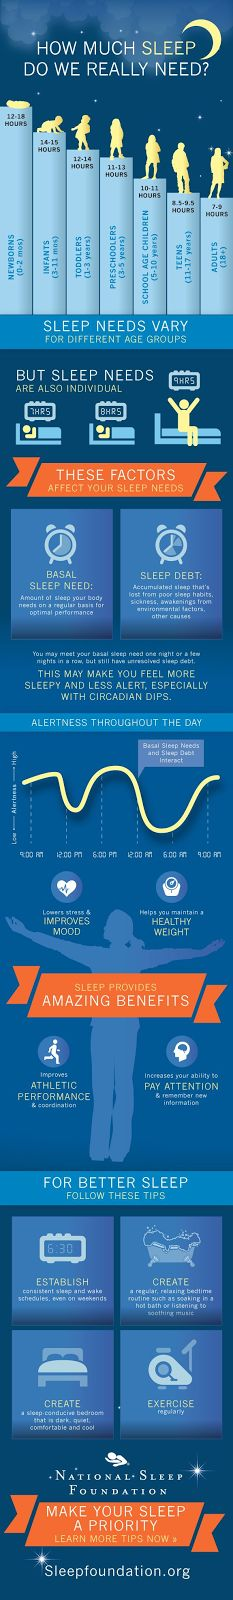 How much sleep do you get? Sleep hygiene is essential for depression and other mood disorders.  For everyone!